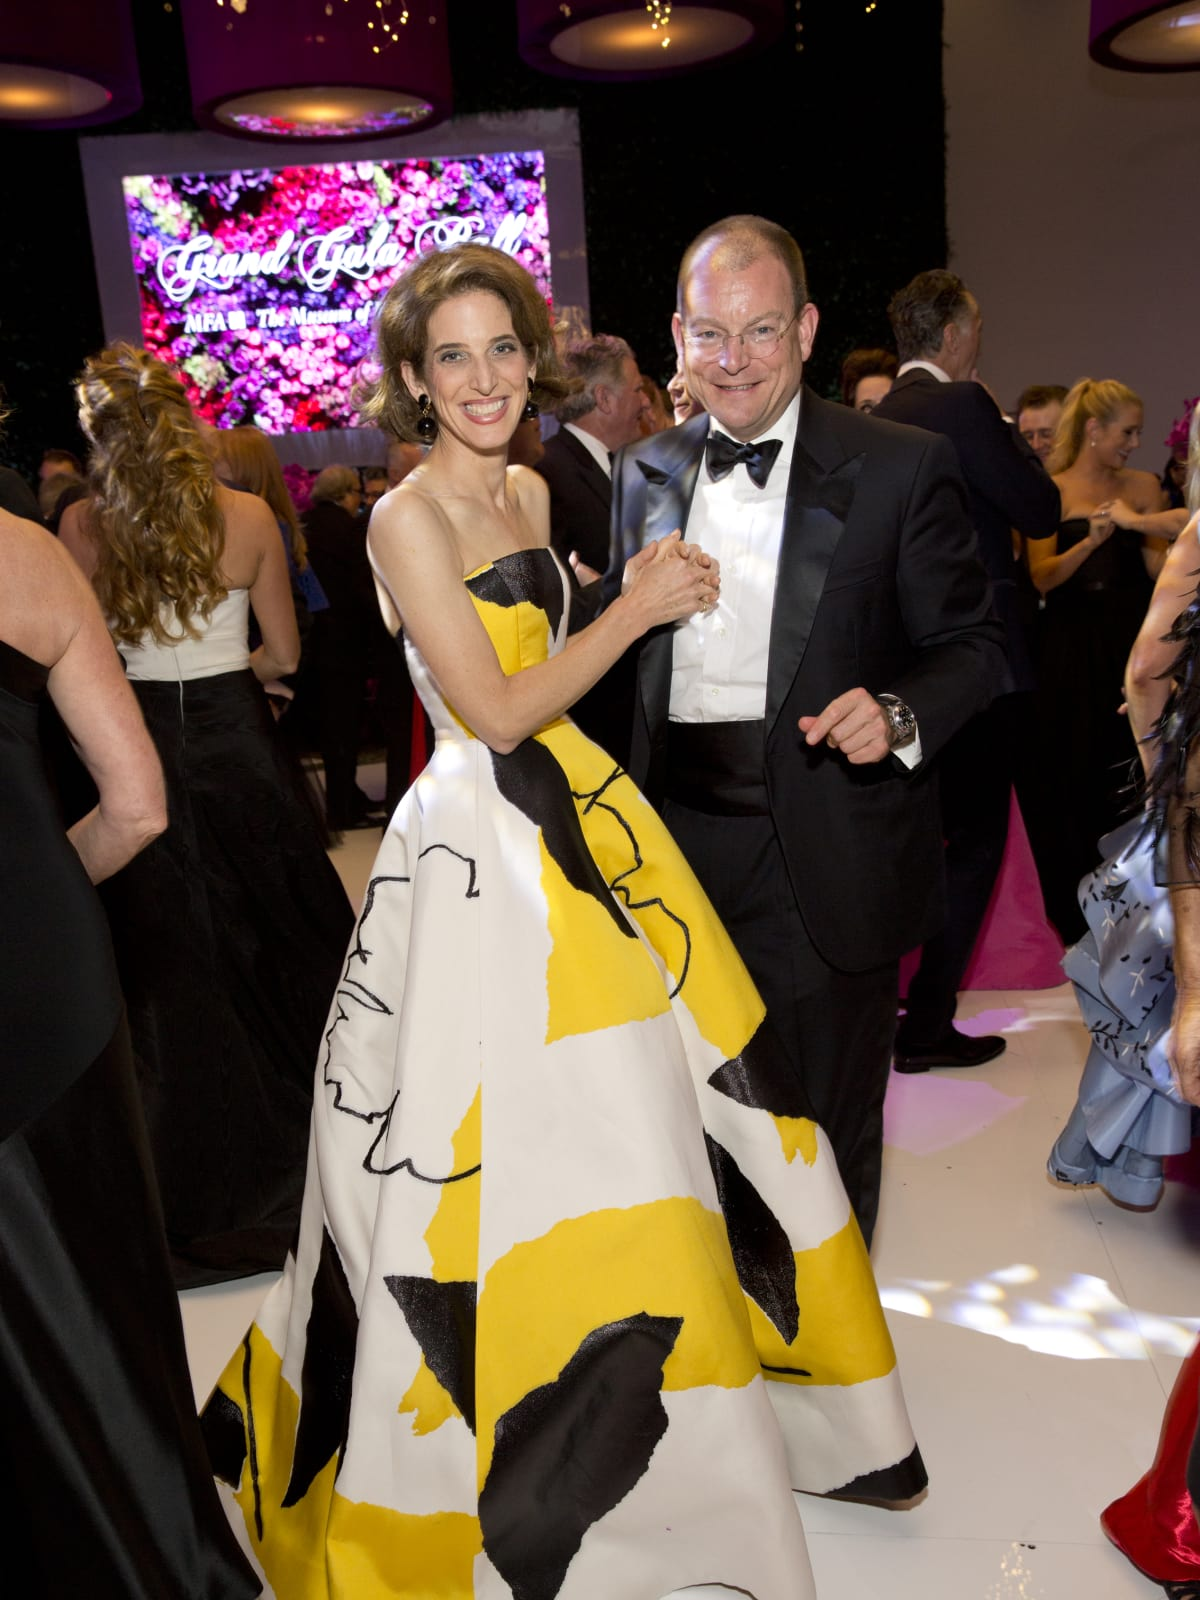 Eliza and Alex Bolen at MFAH Grand Gala Ball